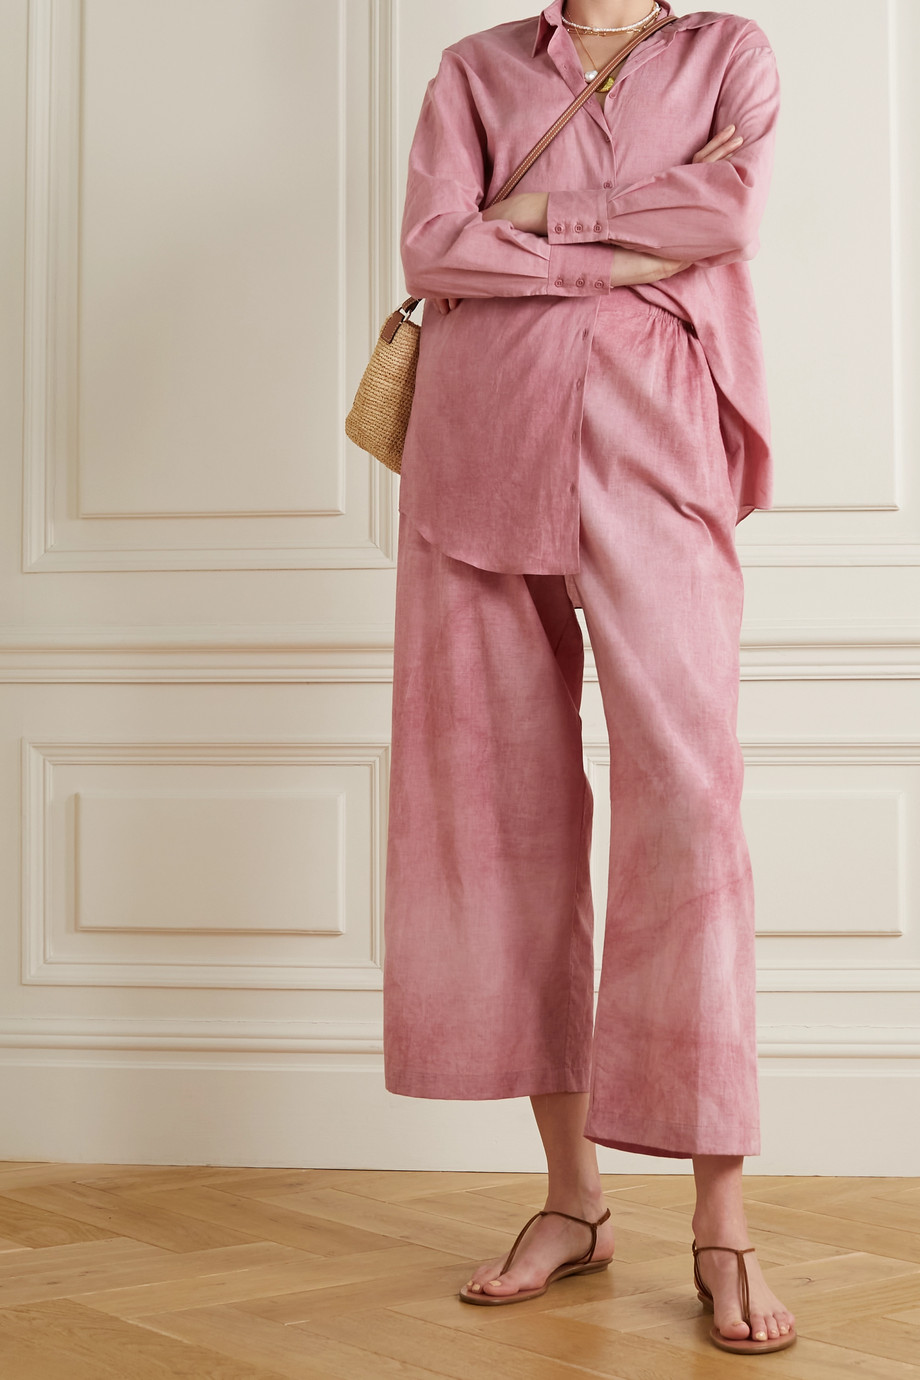 Cortana + NET SUSTAIN Rose cotton wide-leg pants